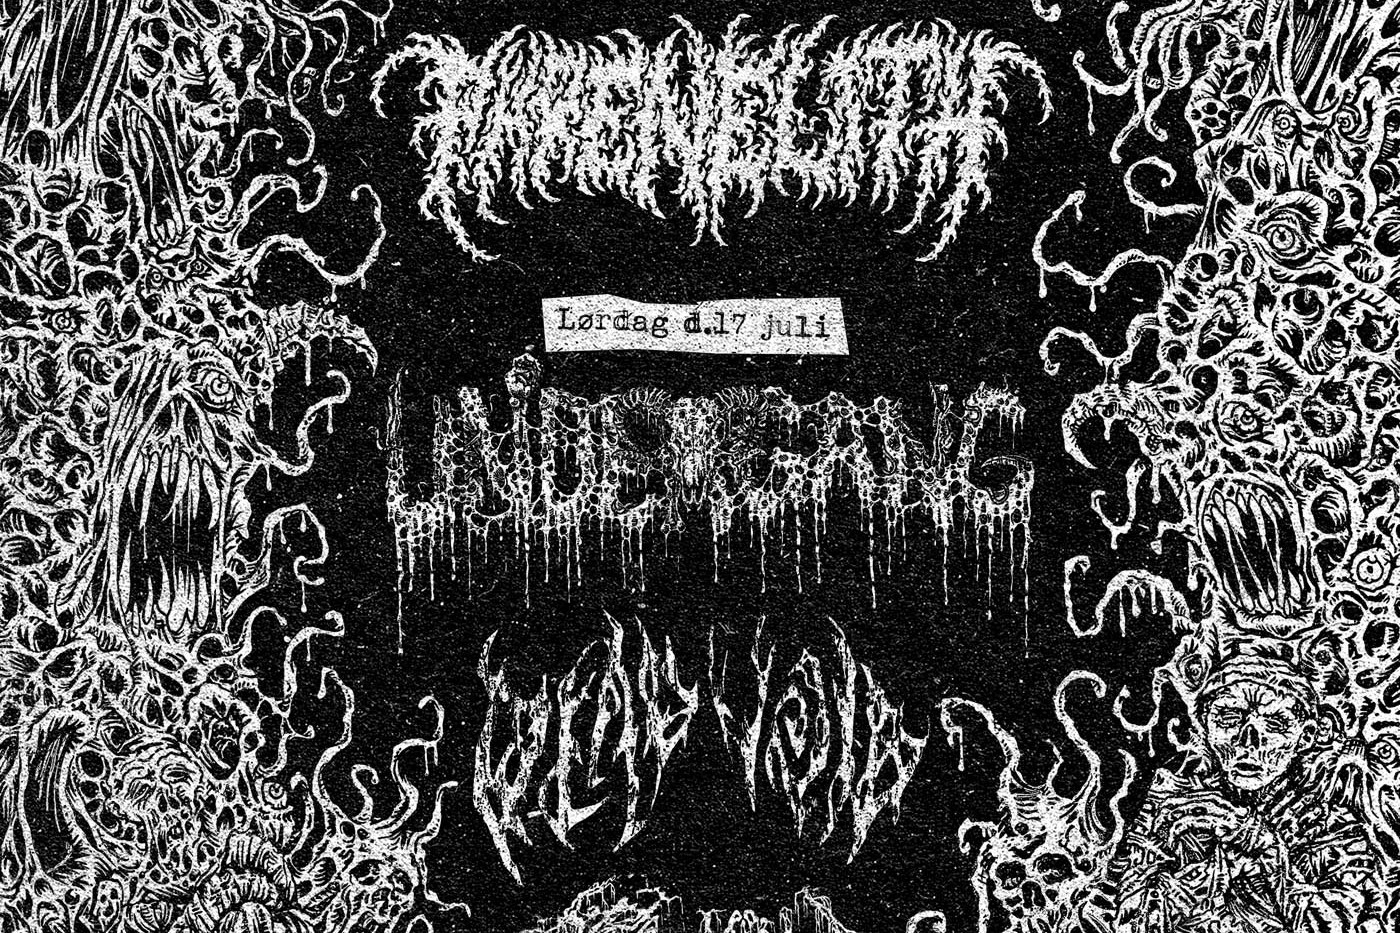 Extremely Rotten Death Metal Vol. 10 flyer